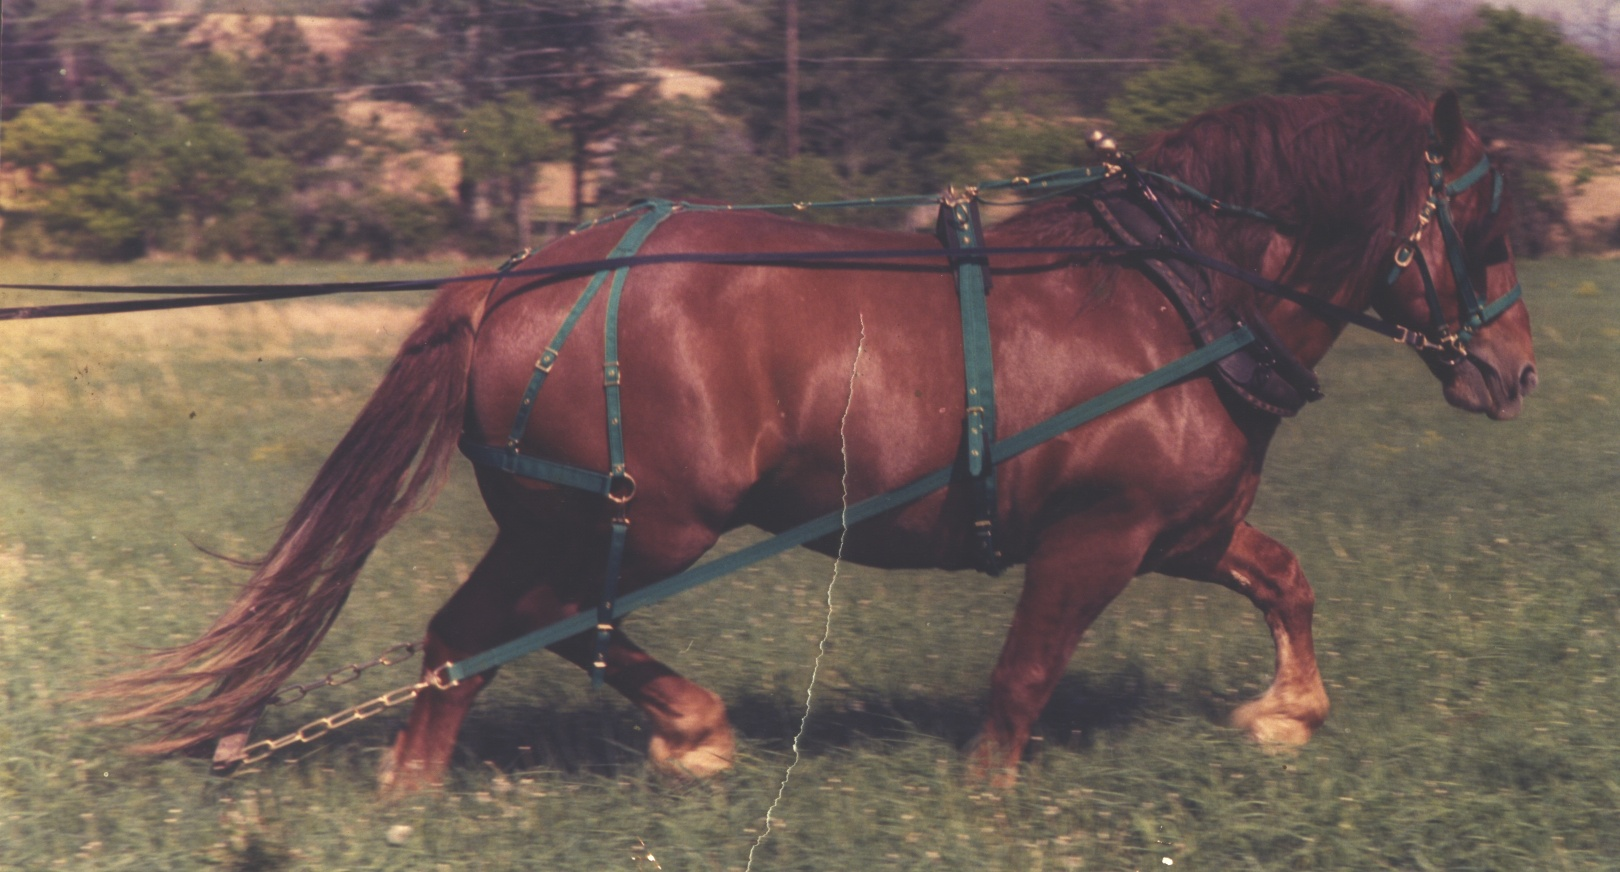 No. 4100 harness